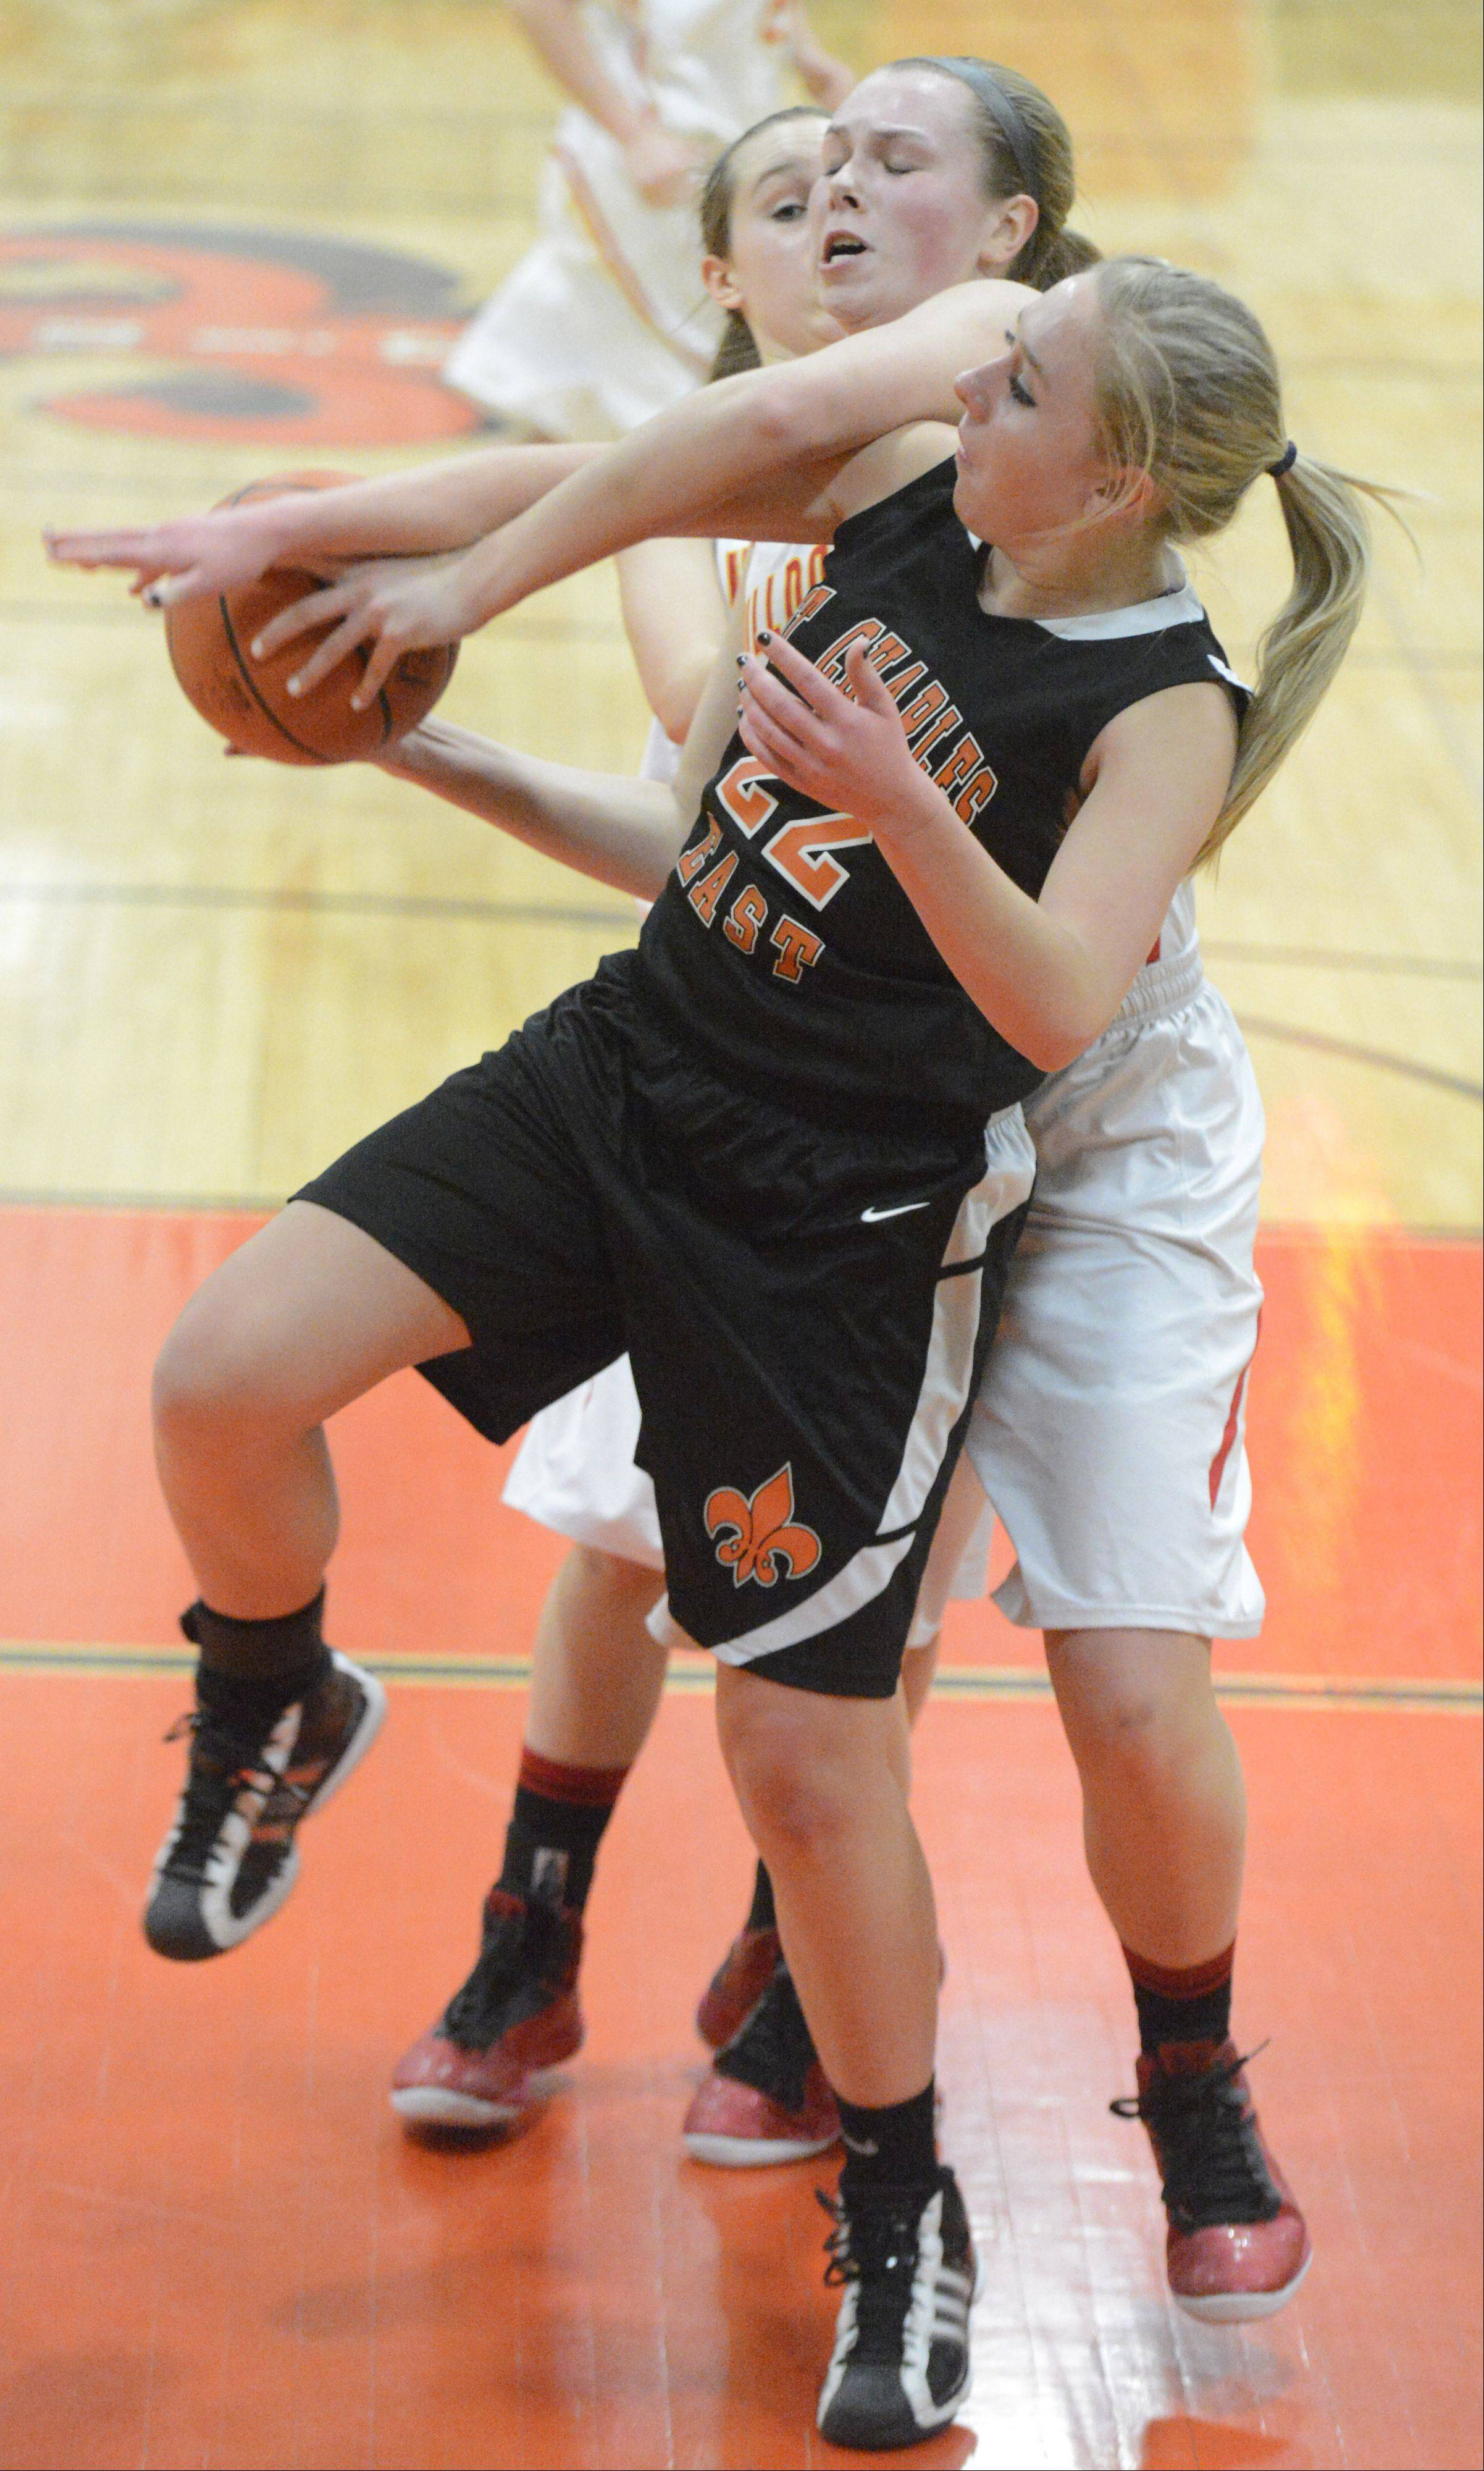 Laura Stoecker/lstoecker@dailyherald.comSt. Charles East's Anna Bartels and Batavia's Erin Bayram struggle for a rebound in the second quarter of the 4A regional on Tuesday, February 12.